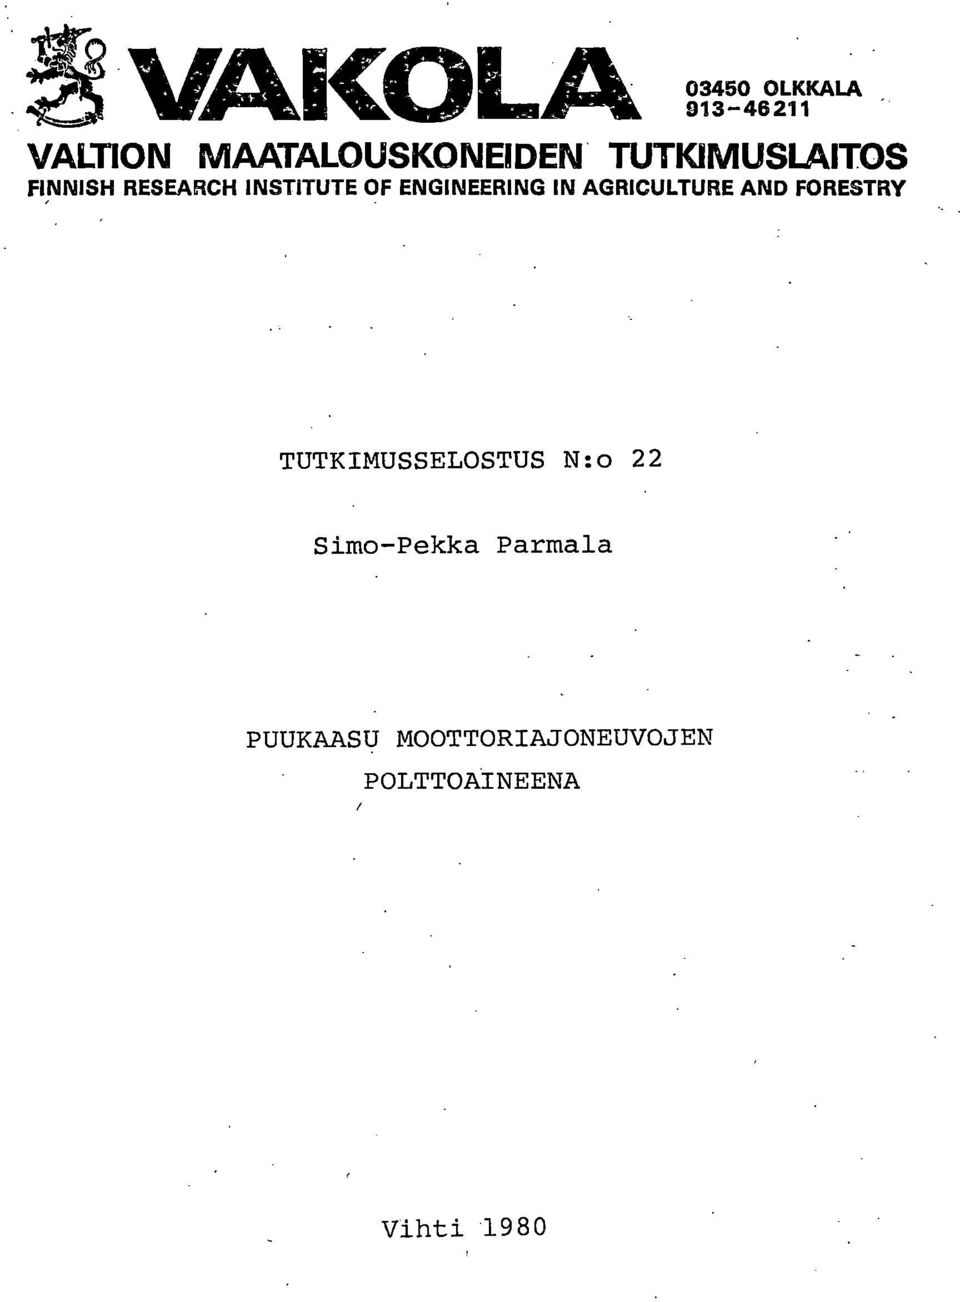 AGRICULTURE AND FORESTRY TUTKIMUSSELOSTUS N:o 22 Simo-Pekka